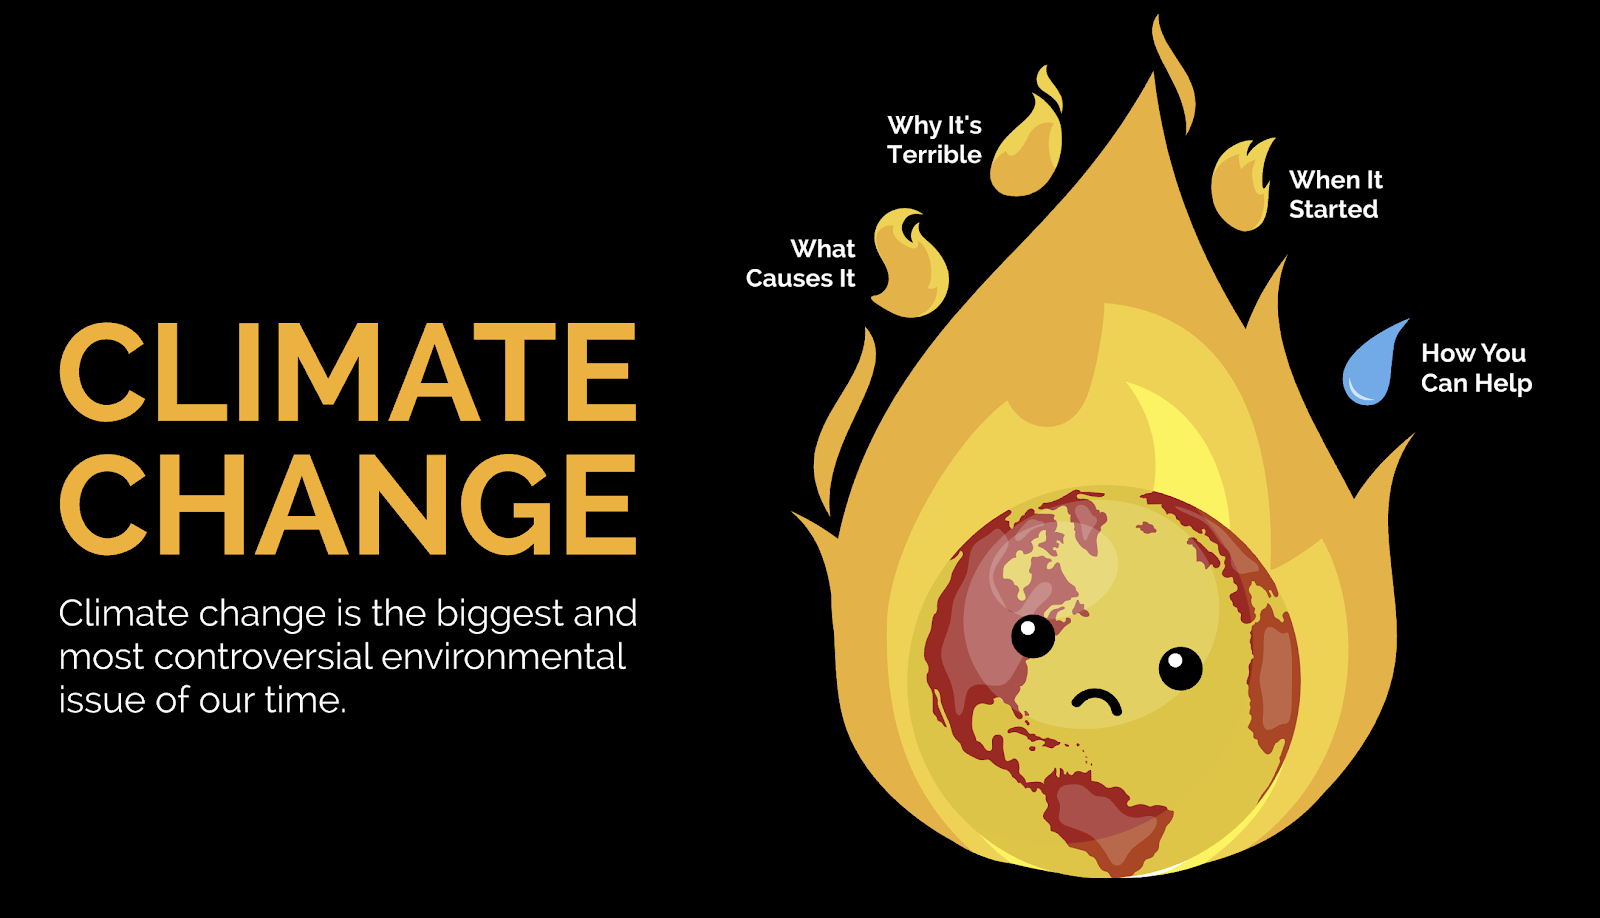 Use this Prezi presentation for school projects where you need to cover a big subject like climate change.